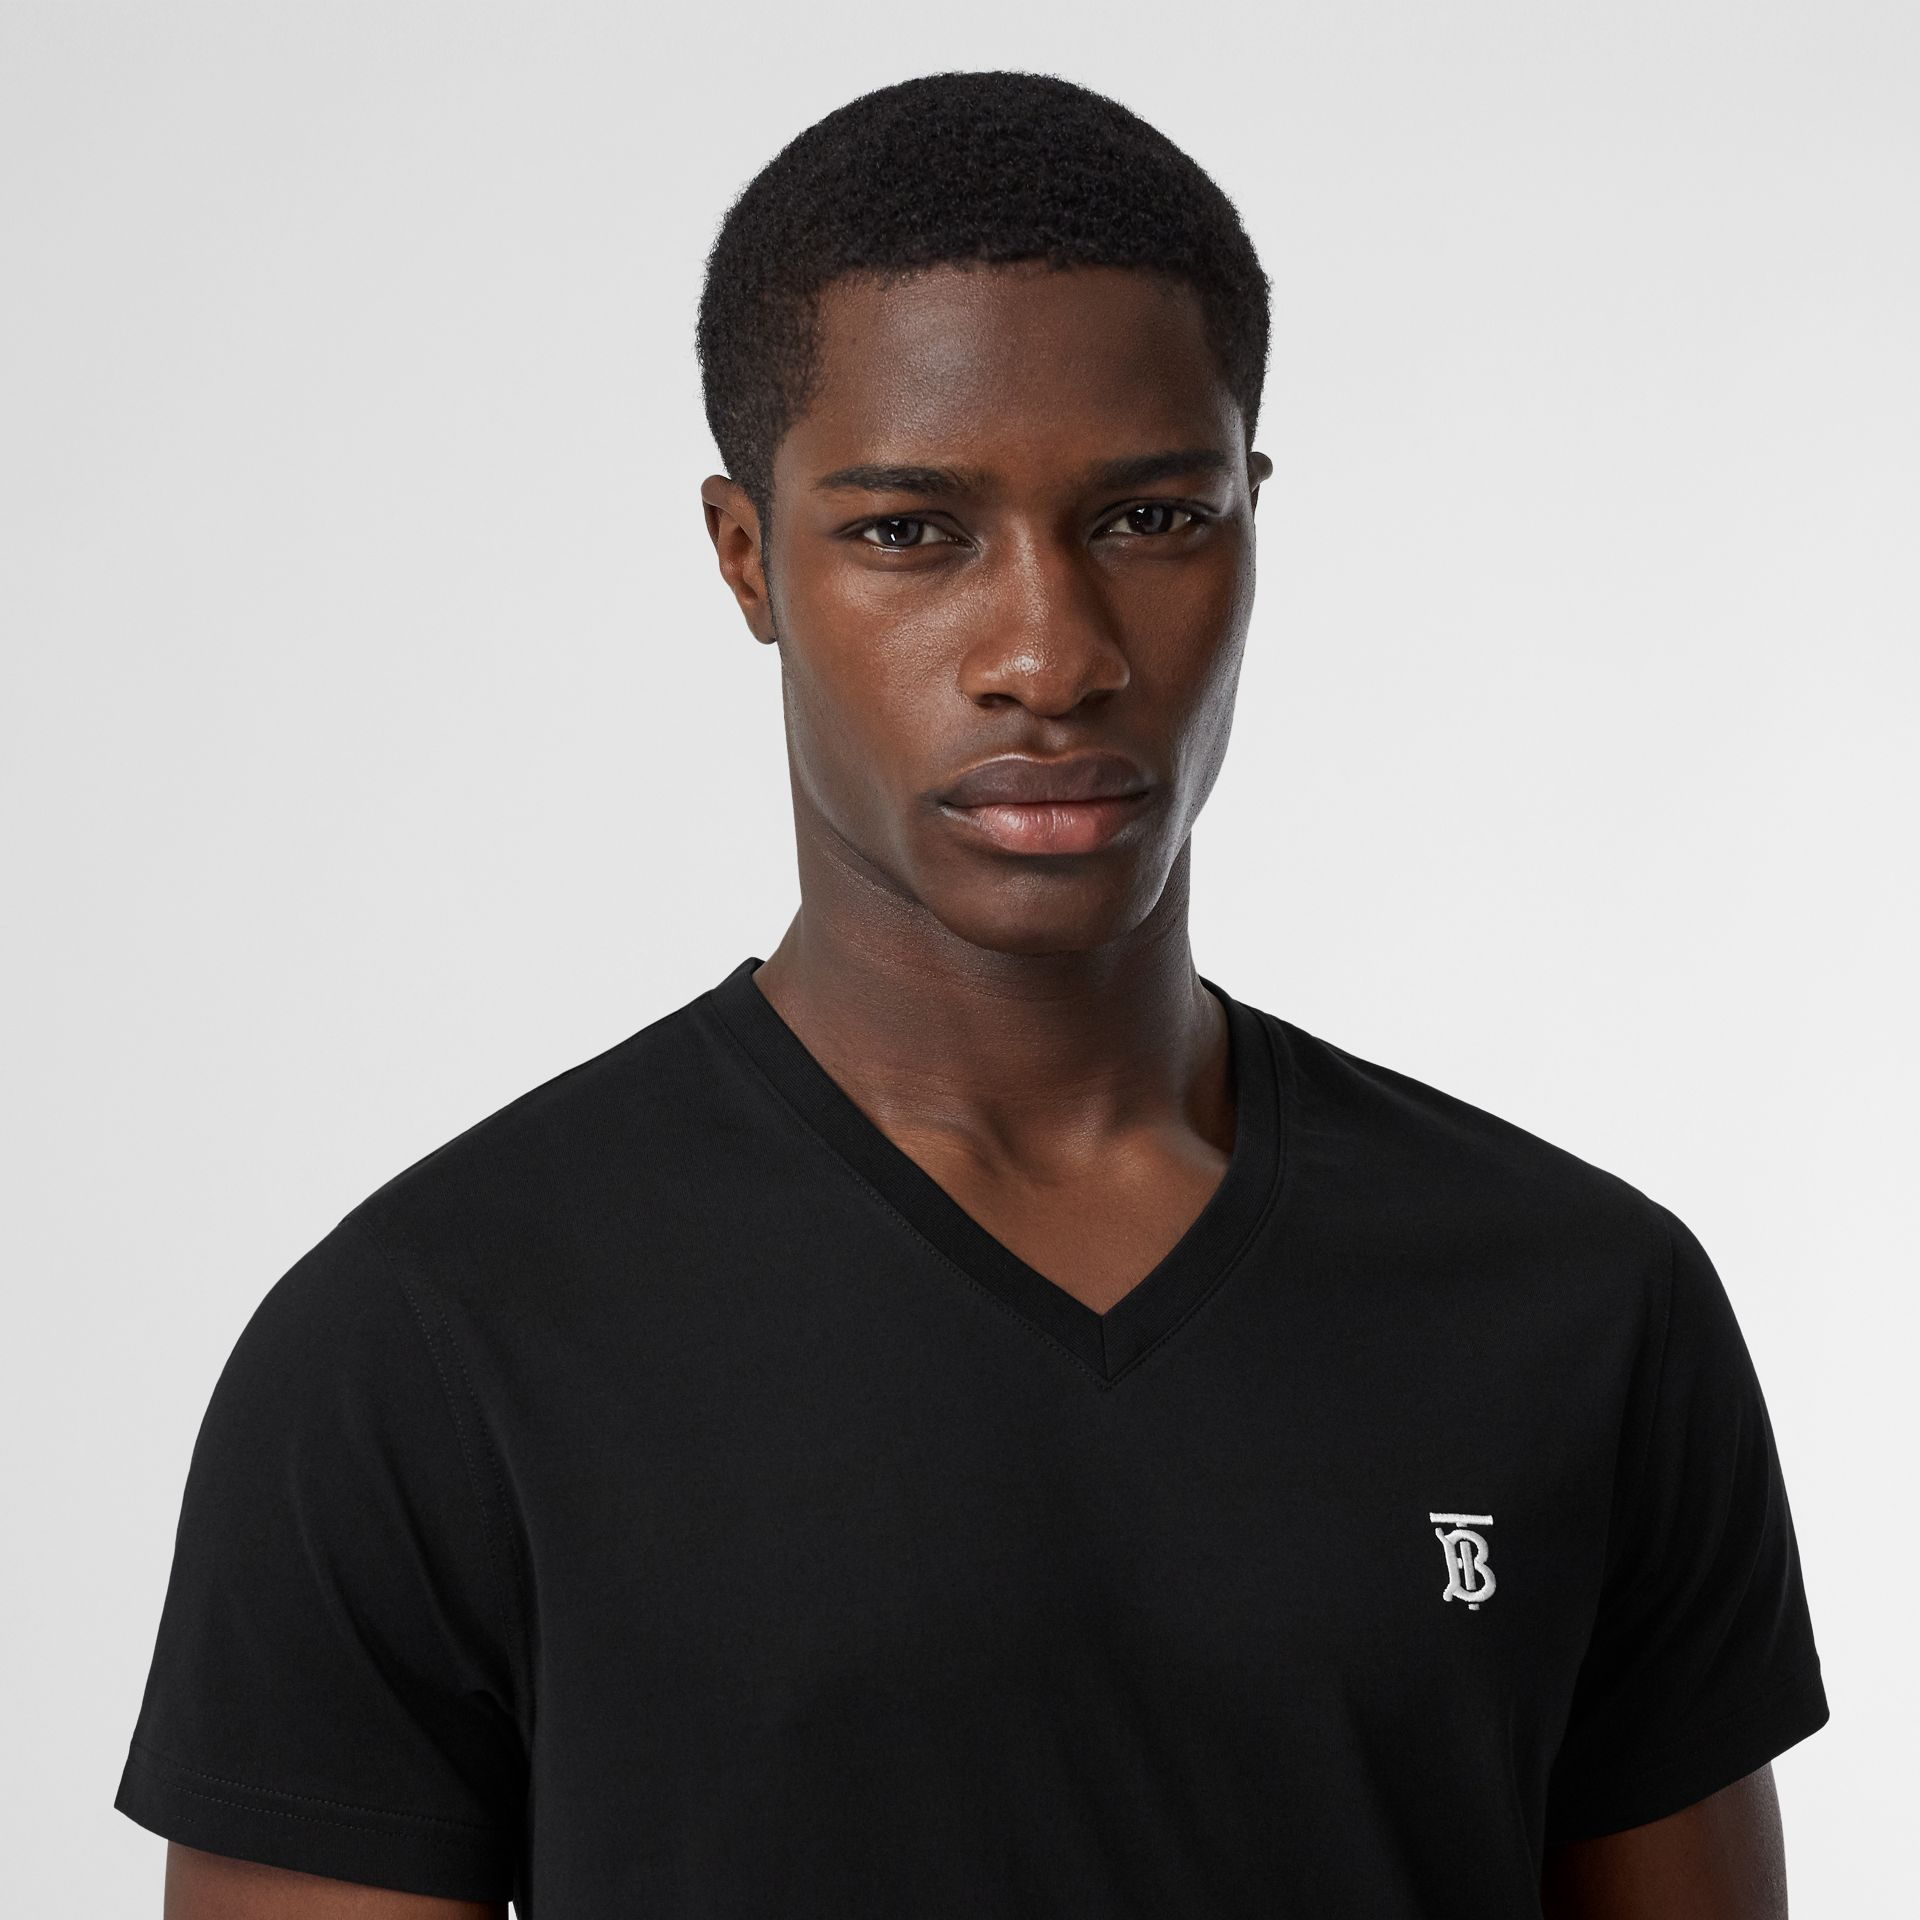 Monogram Motif Cotton V-neck T-shirt in Black - Men | Burberry Hong Kong S.A.R - gallery image 1